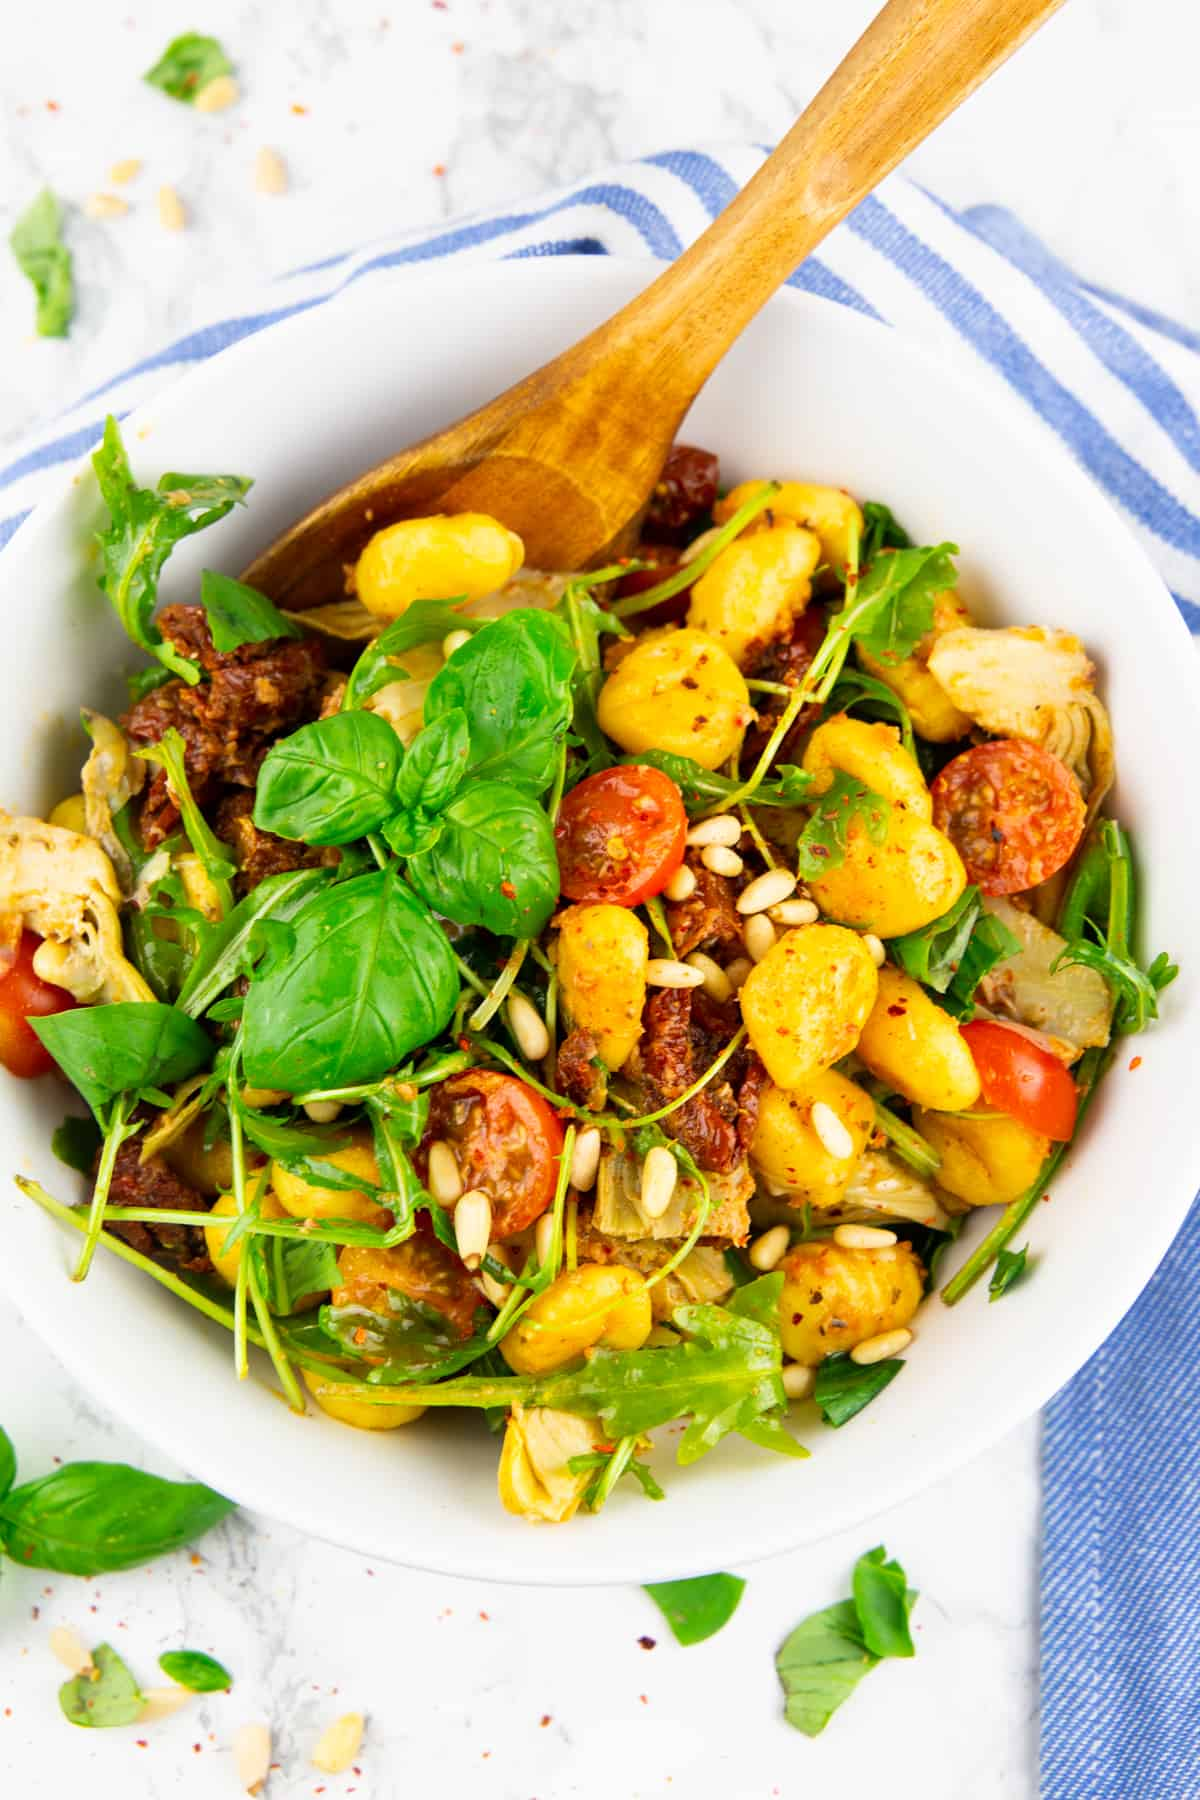 pesto gnocchi with tomatoes, artichokes, and arugula in a white bowl with a wooden spoon